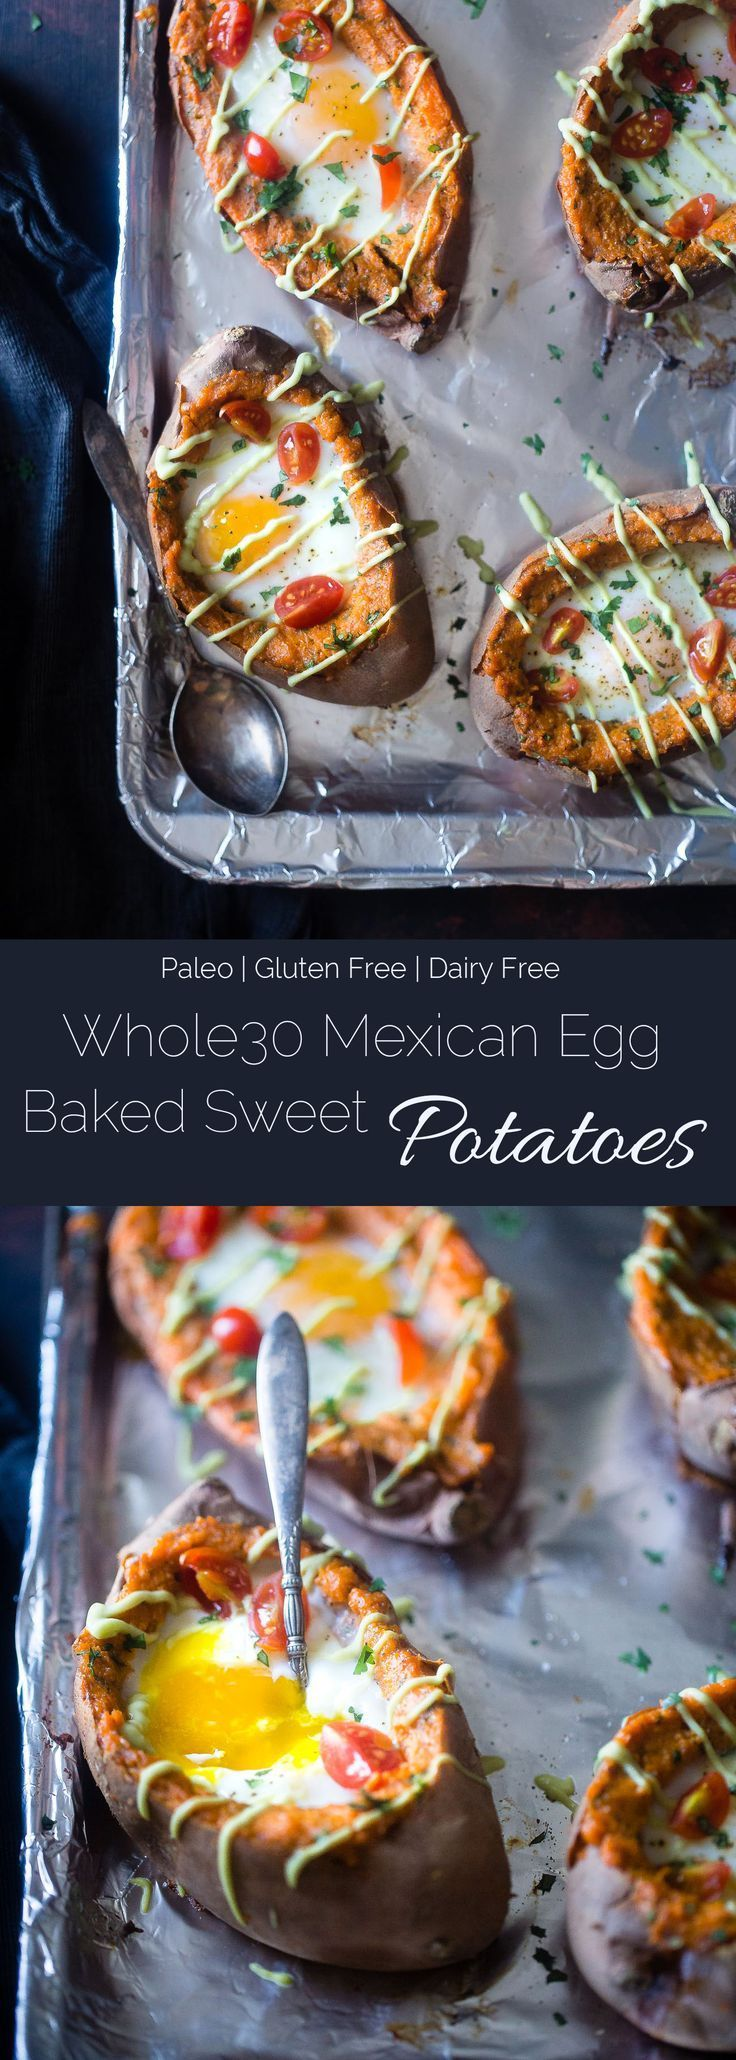 Mexican Stuffed Sweet Potatoes - These Mexican sweet potatoes have a runny egg and a tangy lime avocado sauce! They're a healthy, gluten free and whole30 friendly weeknight meal!